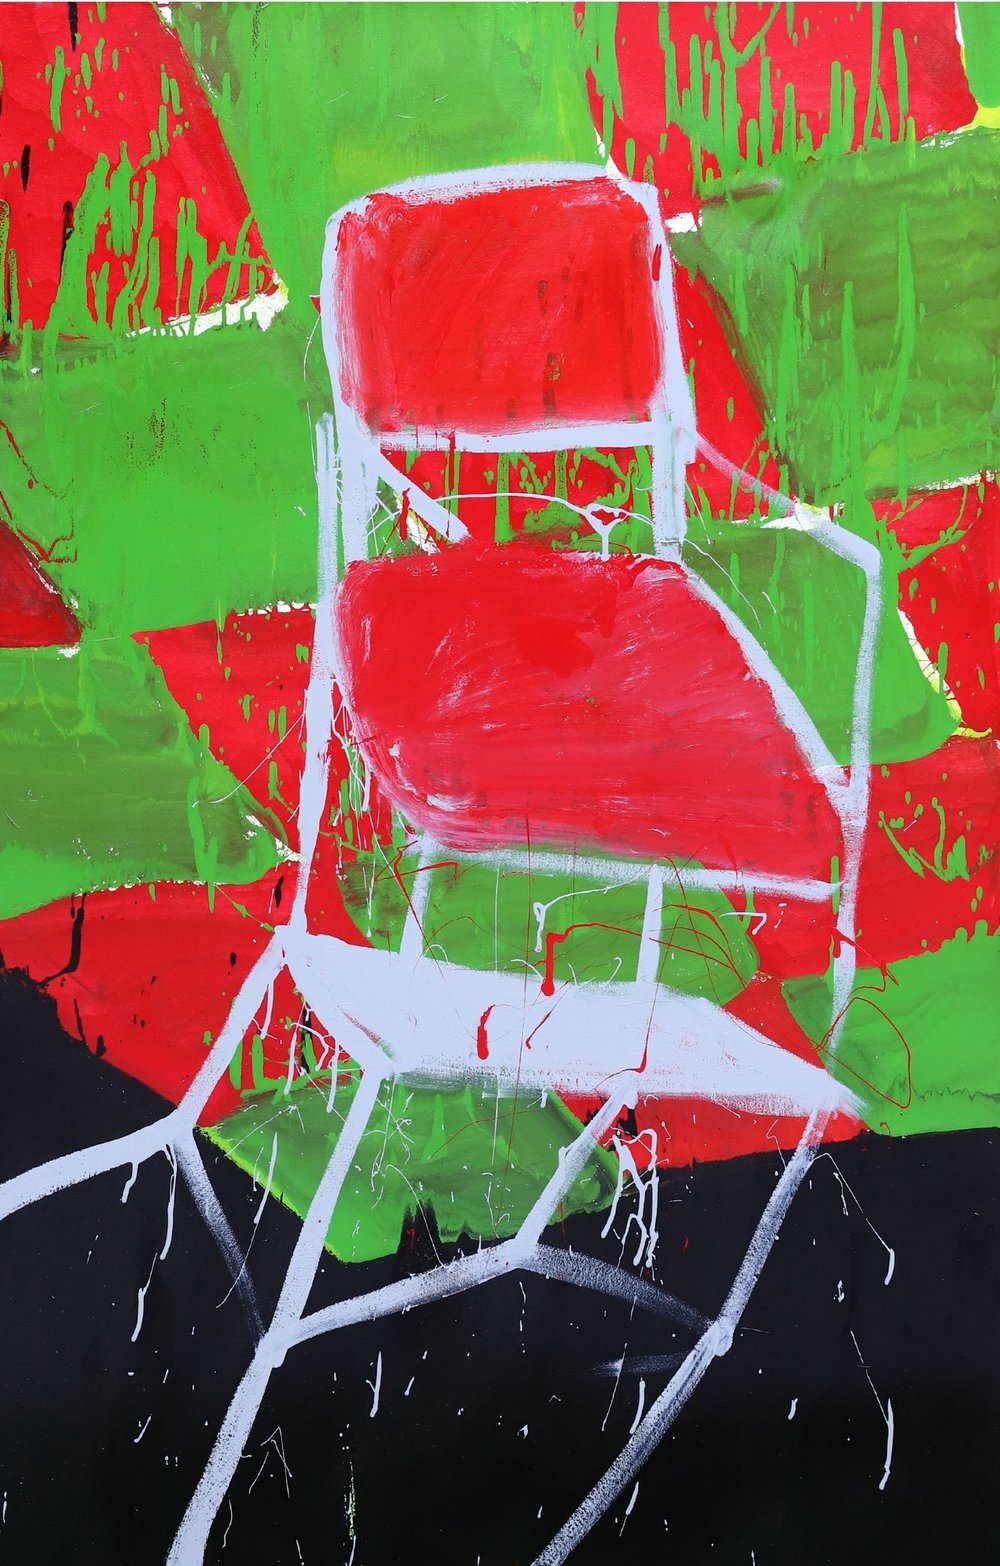 The chair returns II, 2018, enamel paint on canvas, 91 x 152 cm